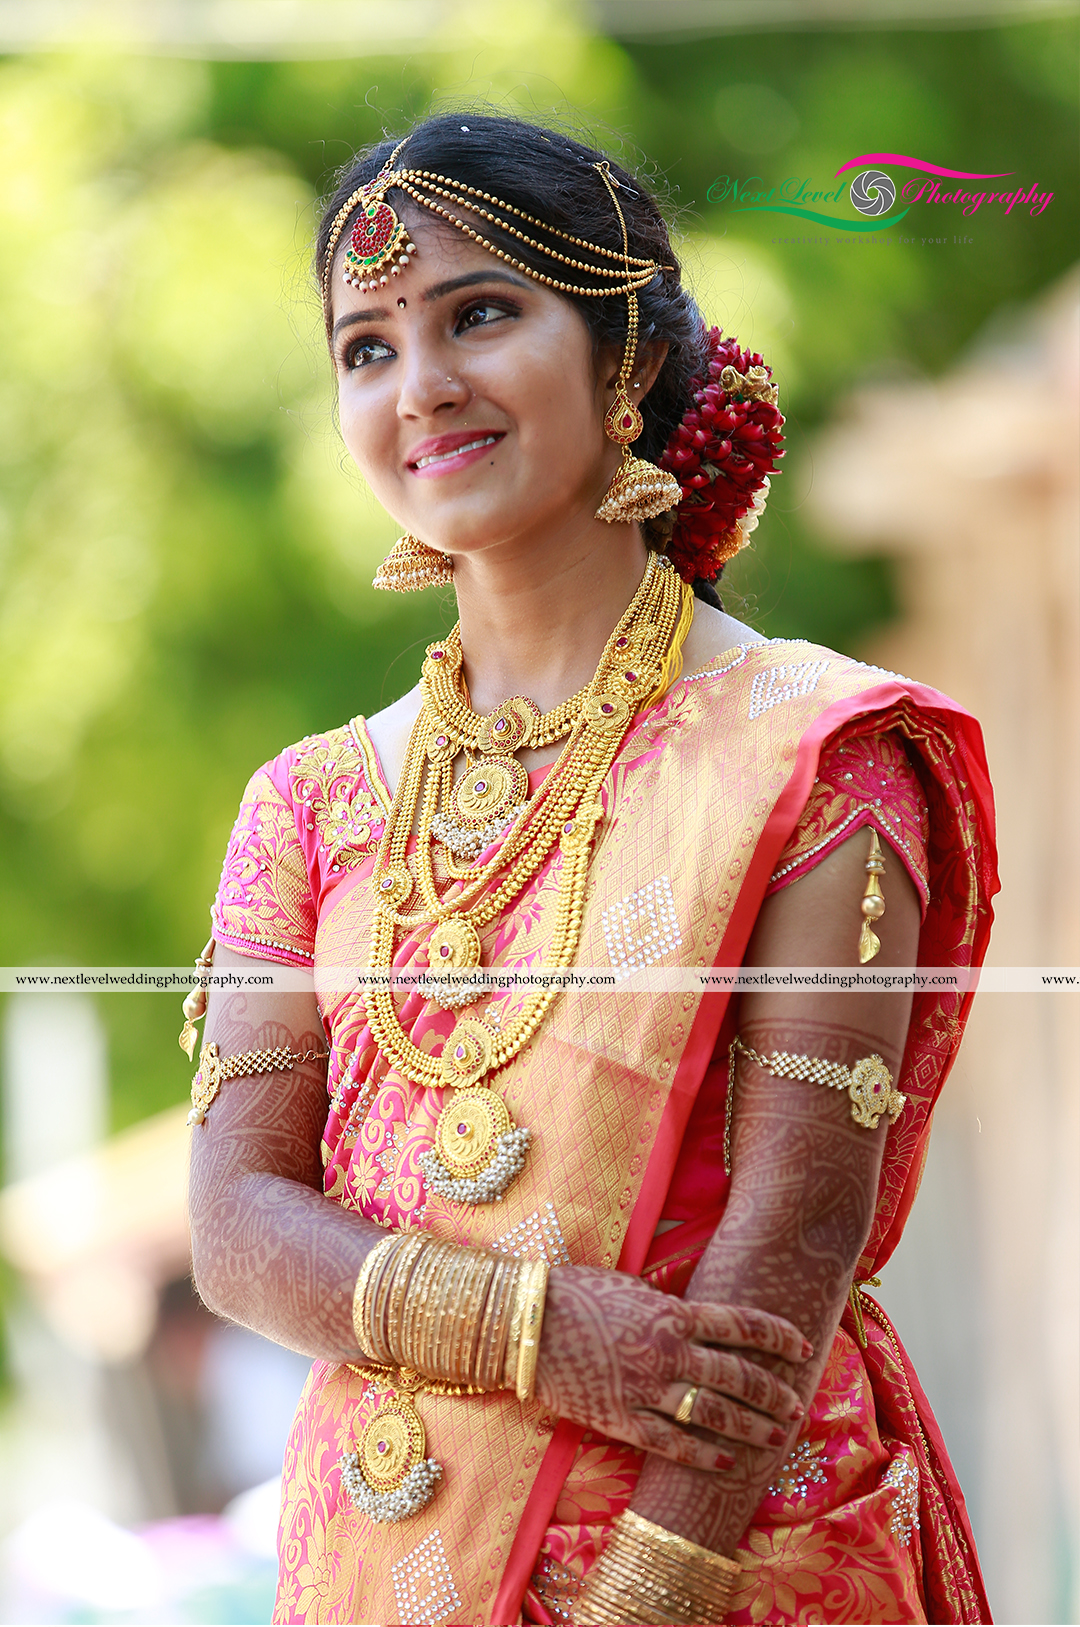 professional candid wedding photography in Madurai 2